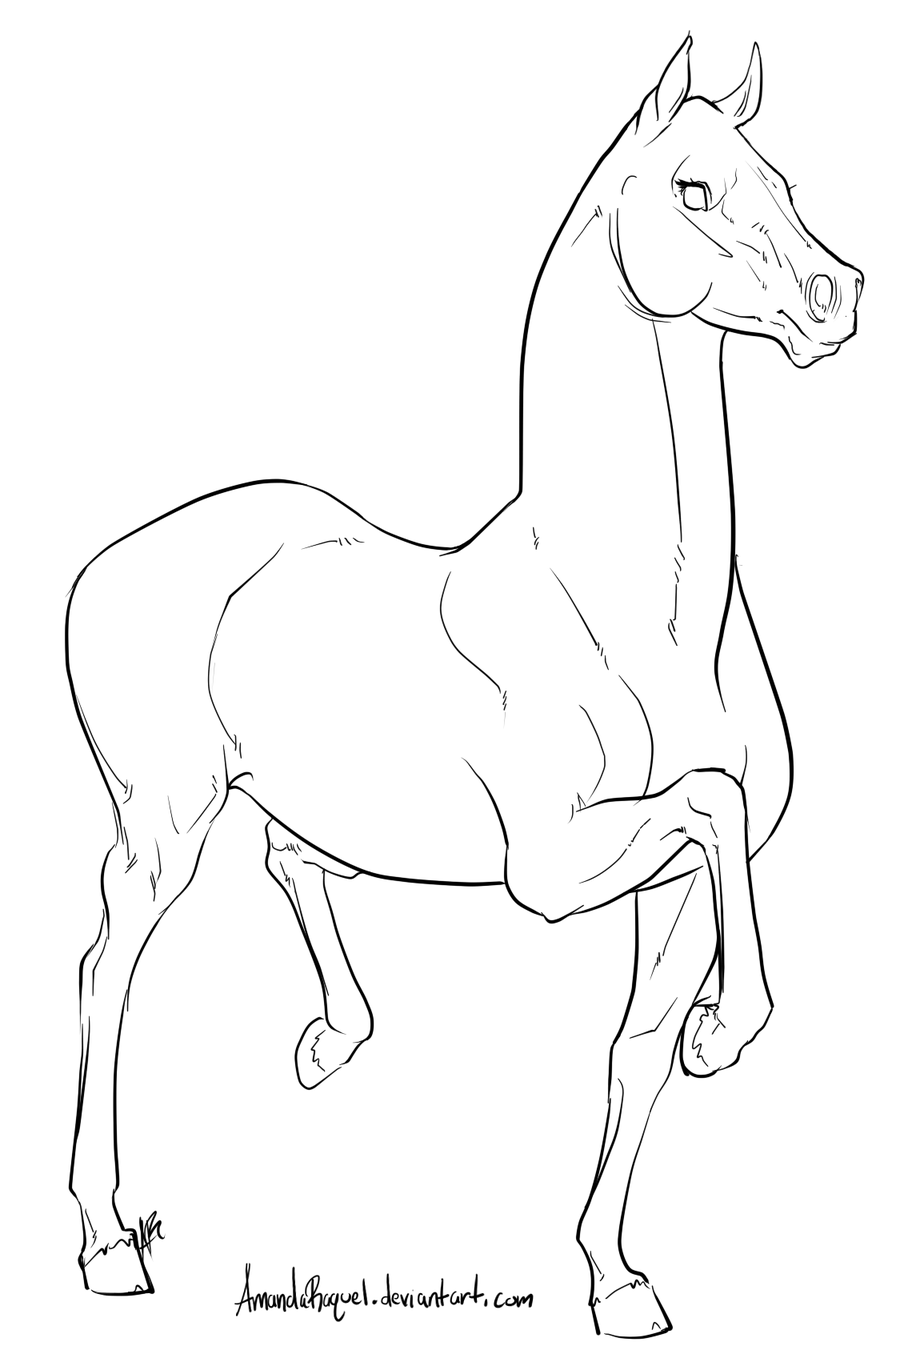 Racking Horse Lineart By Amandaraquel On Deviantart Horse Drawings Animal Drawings Horse Coloring Pages [ 1370 x 900 Pixel ]